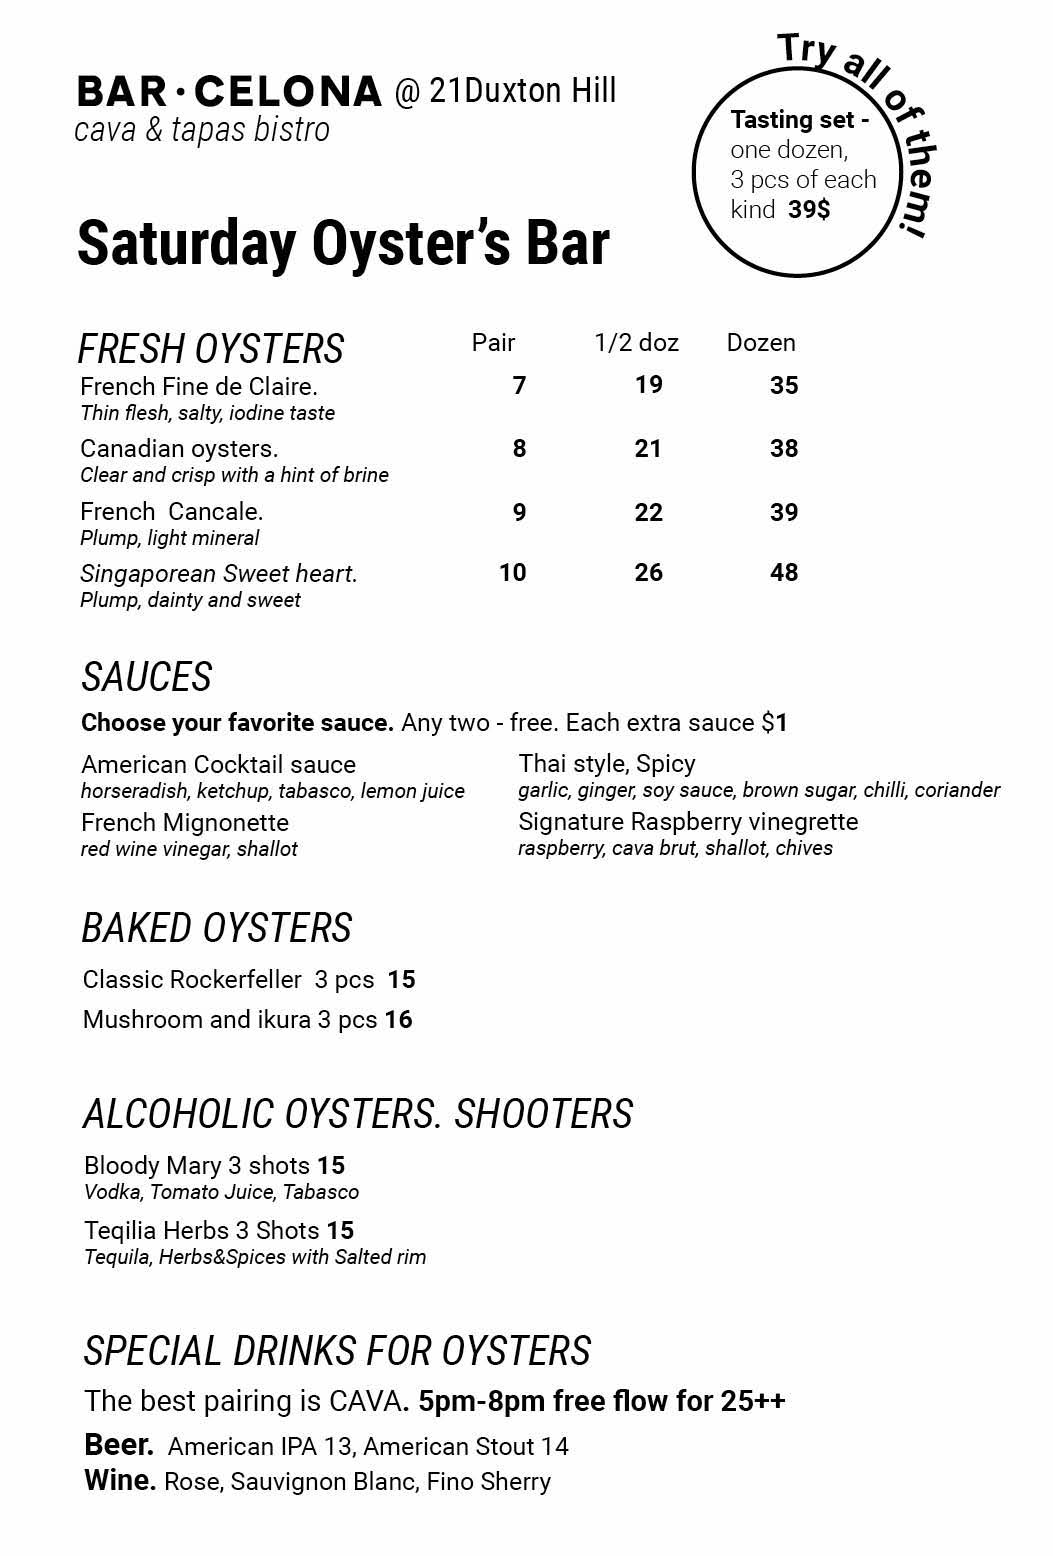 Saturday's Oyster Bar is opening every Saturday in Bar/Celona!!! All oysters from 3,5$ per pc.